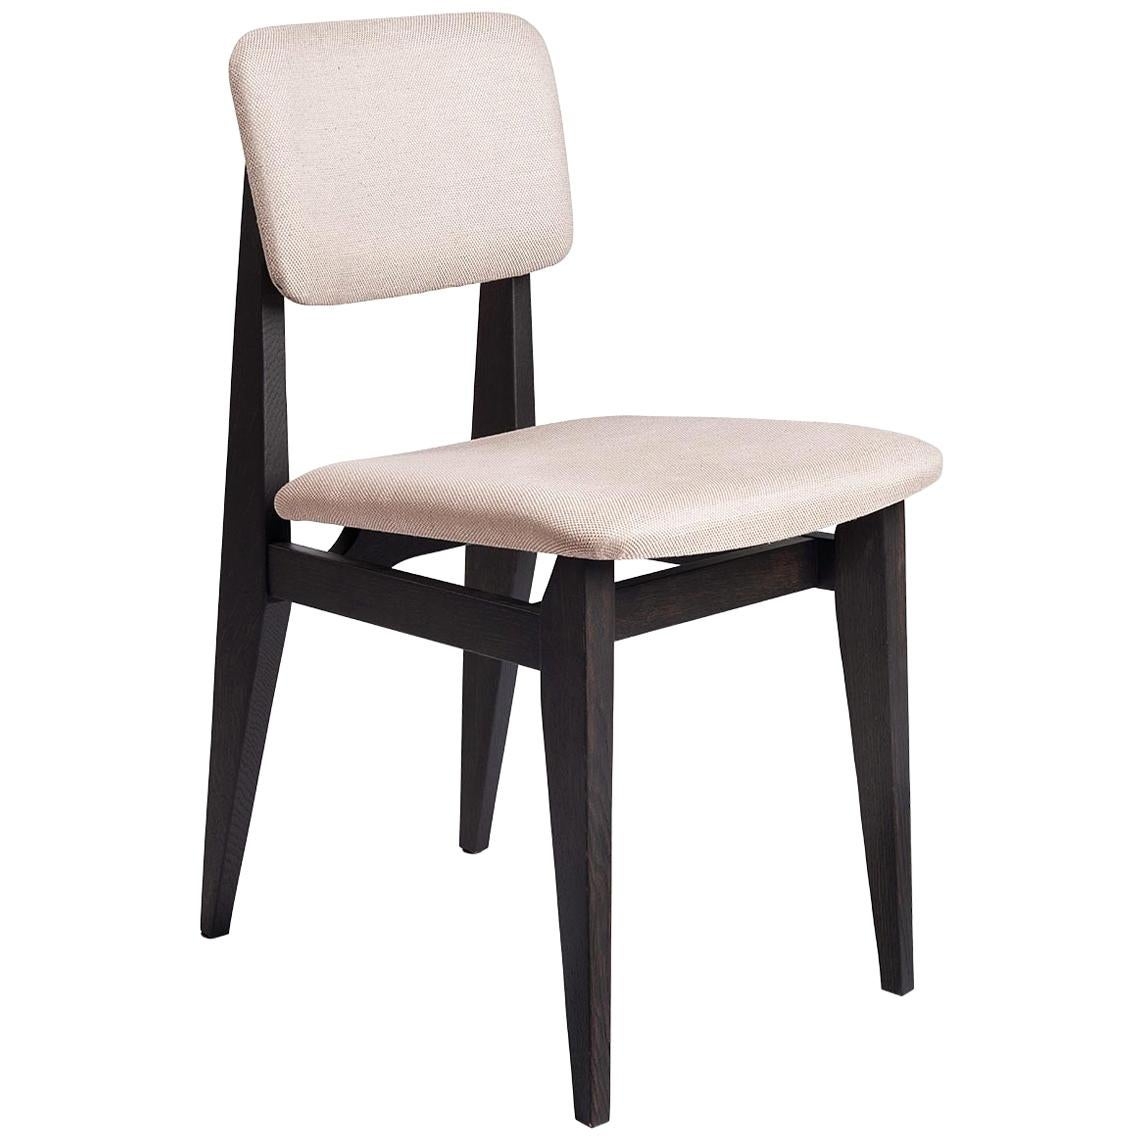 C-Chair Dining Chair, Fully Upholstered, Black Stained Oak